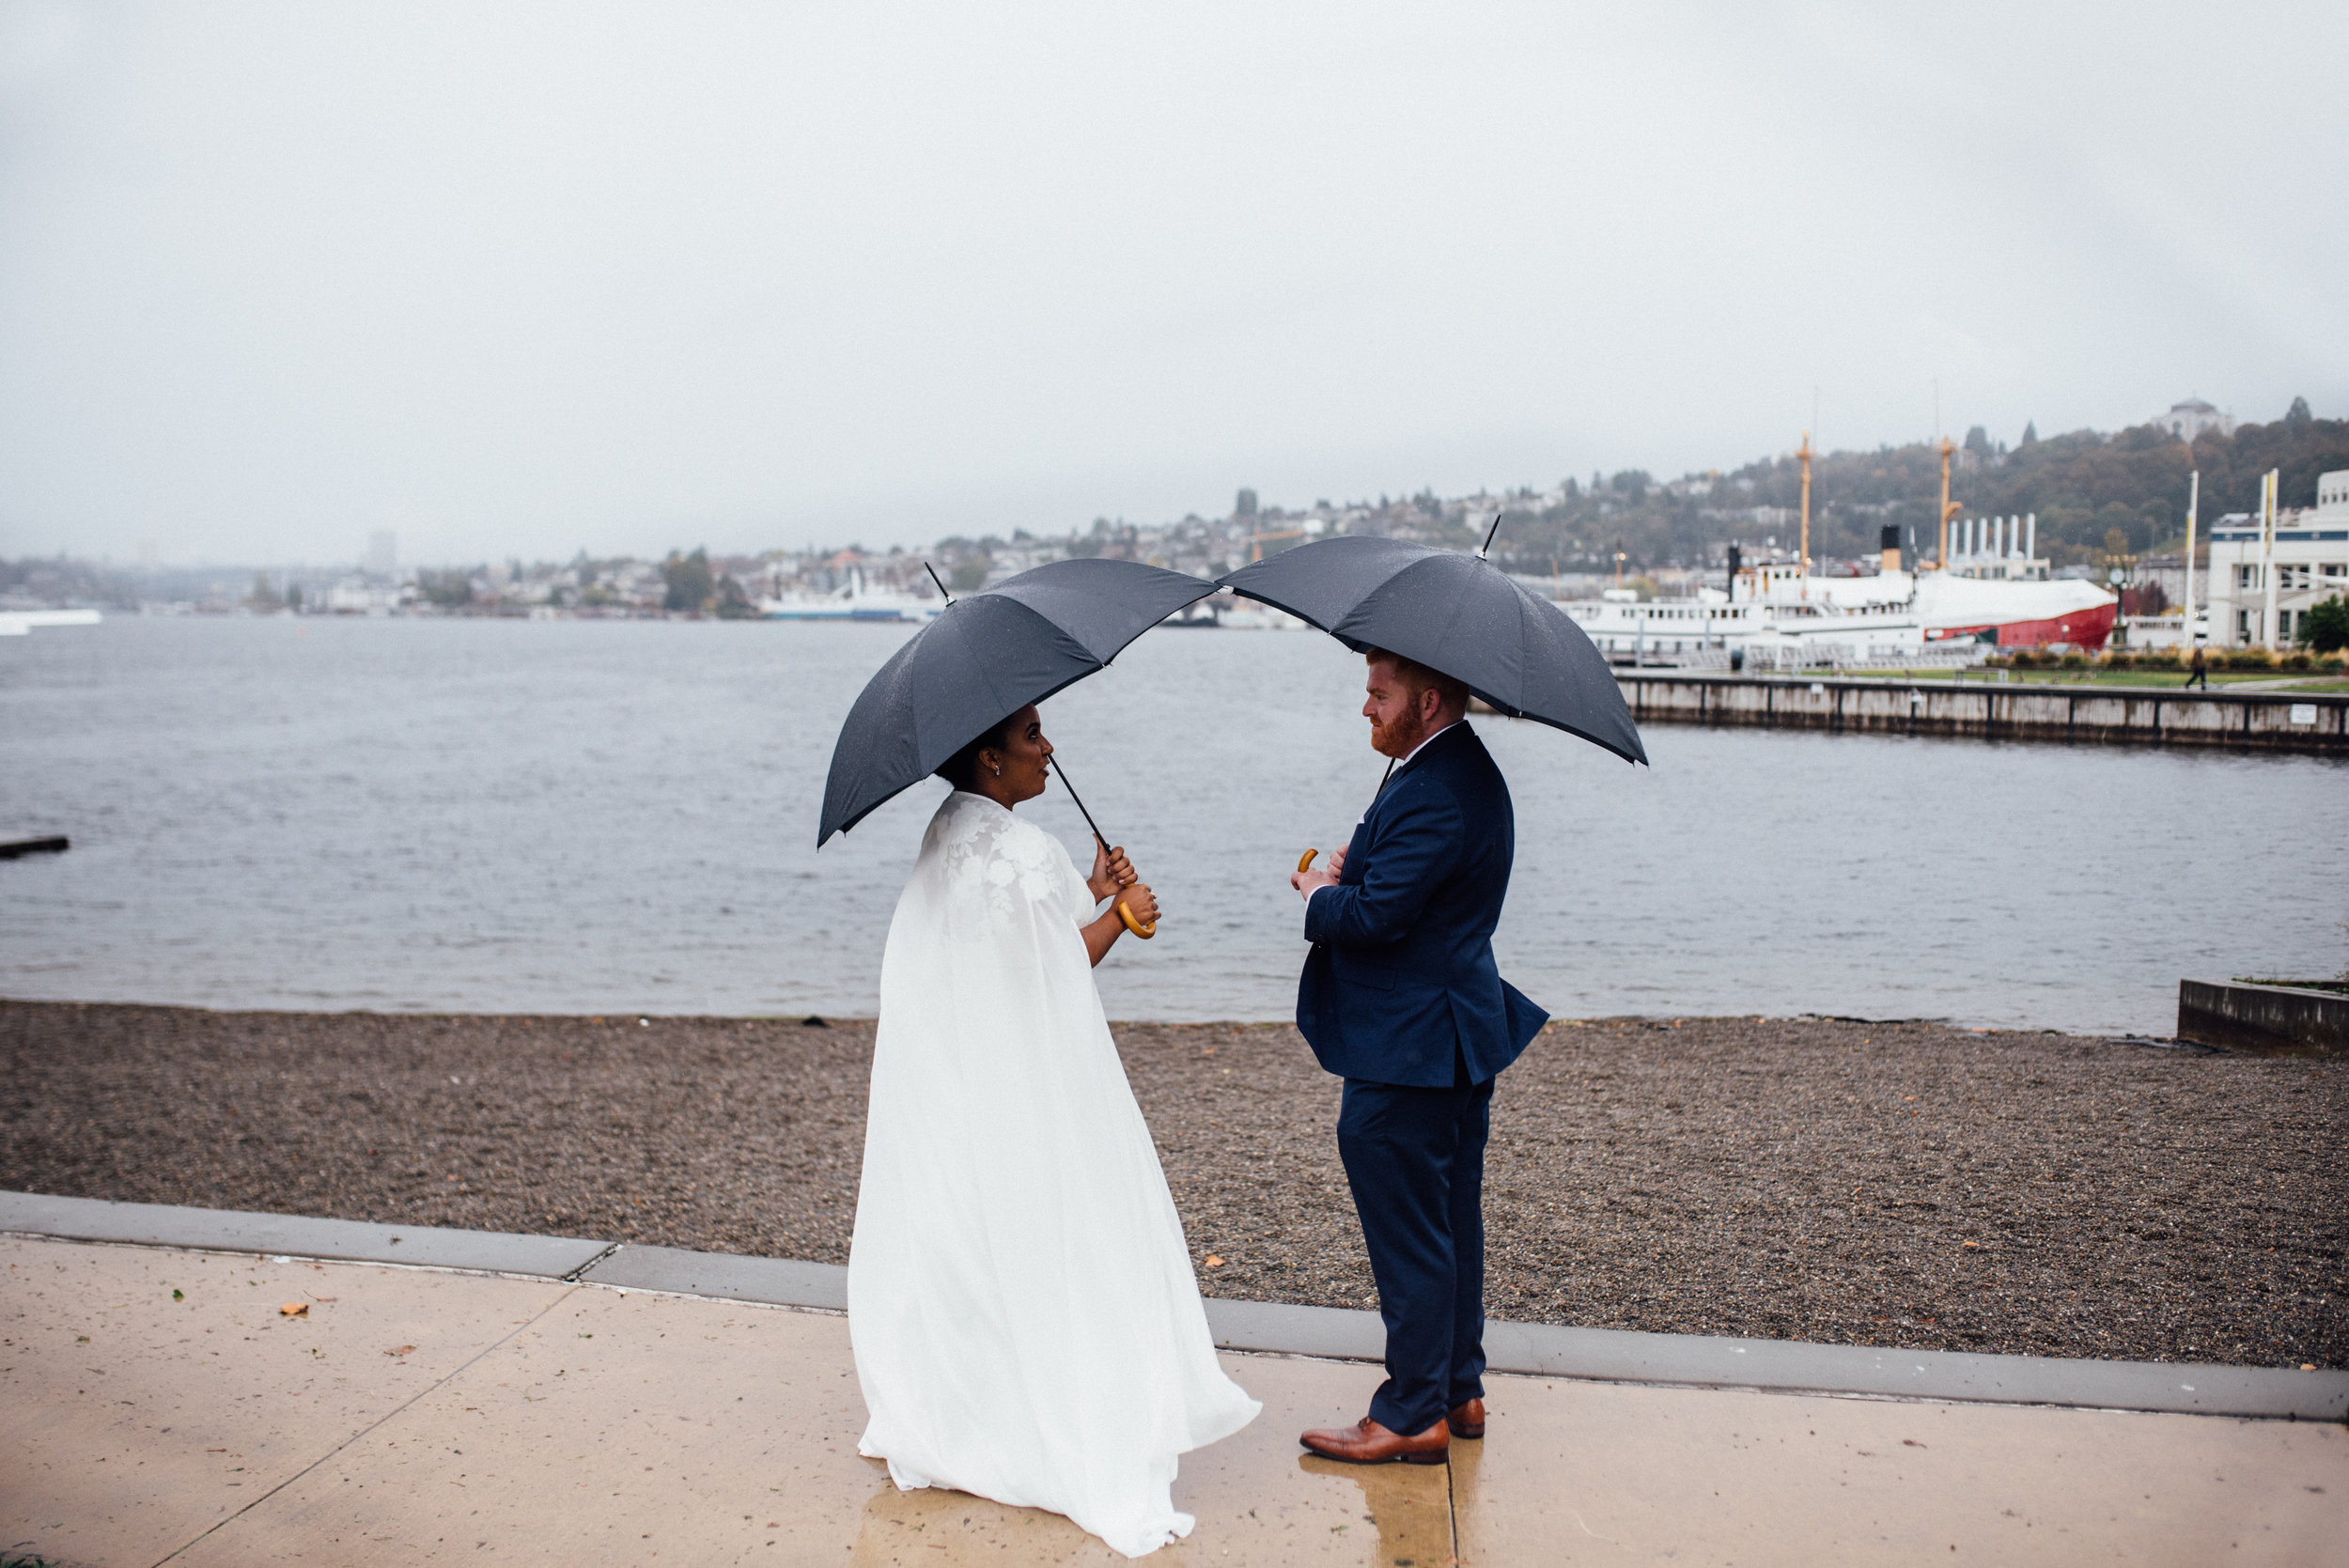 art marble 21 - seattle wedding photographer - washington wedding photographer